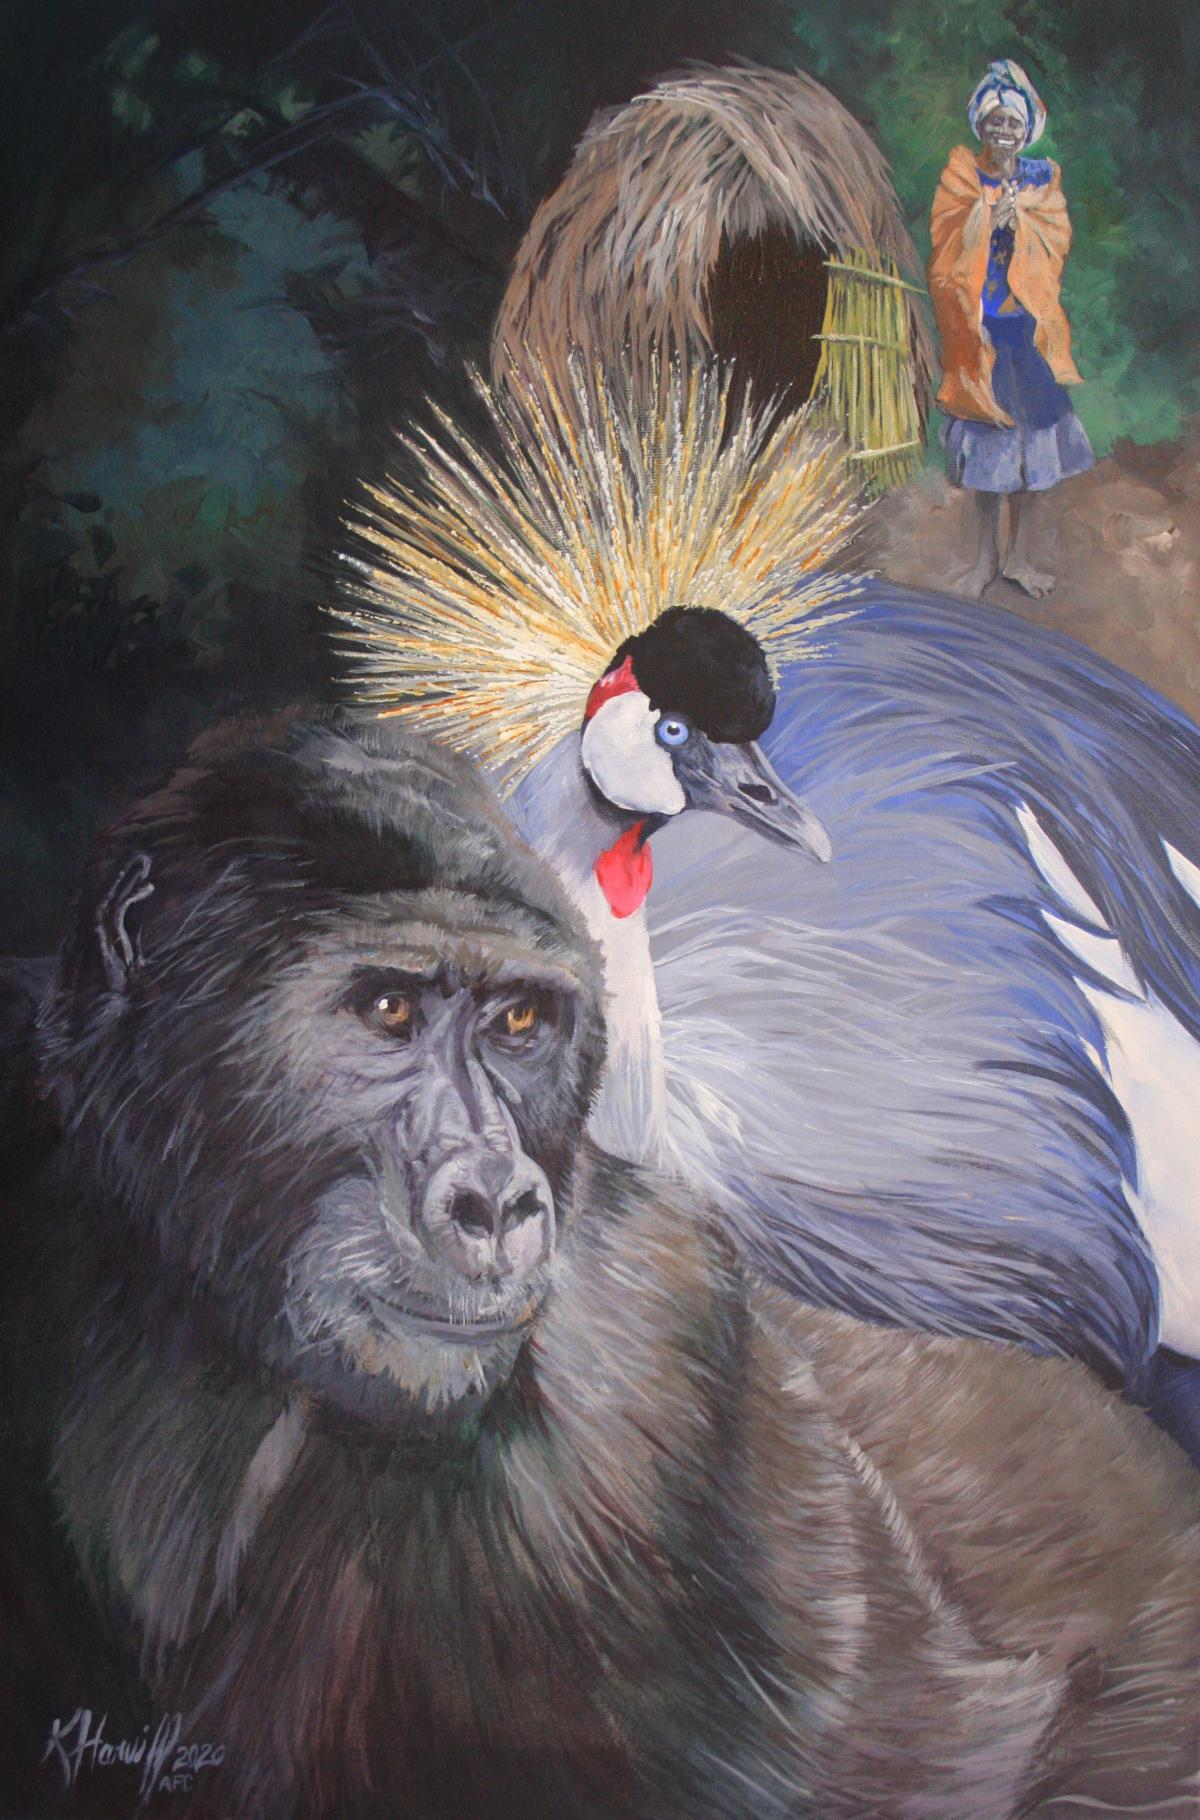 Believing in Bwindi | Wallhanging by Kitty Harvill | Artists for Conservation 2021